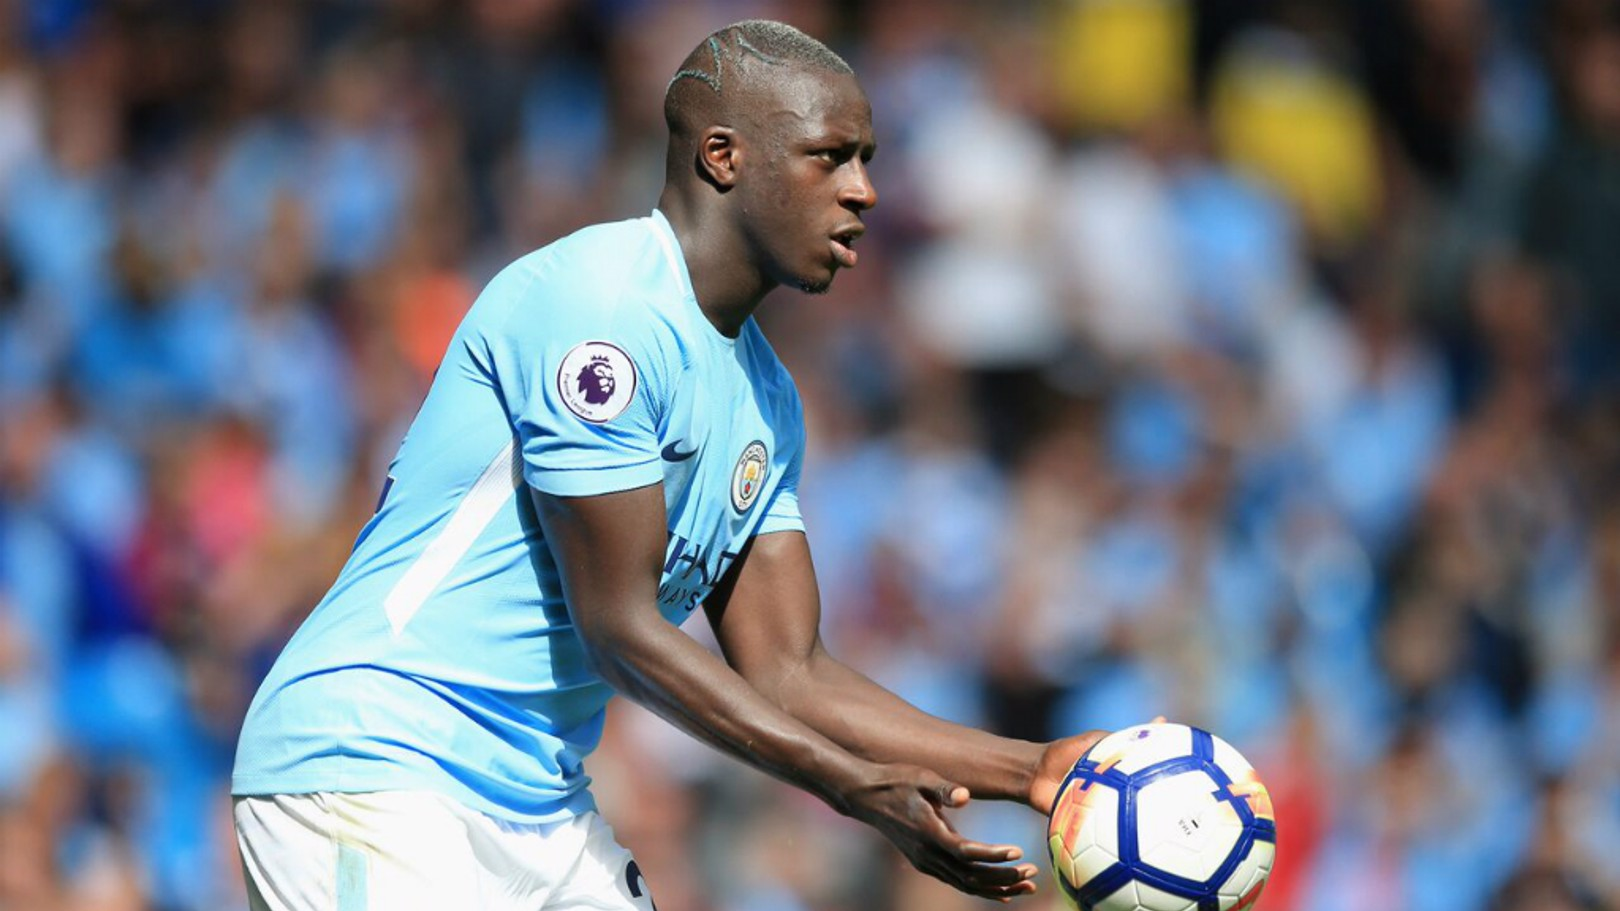 CLOSING IN: Mendy is making excellent progress